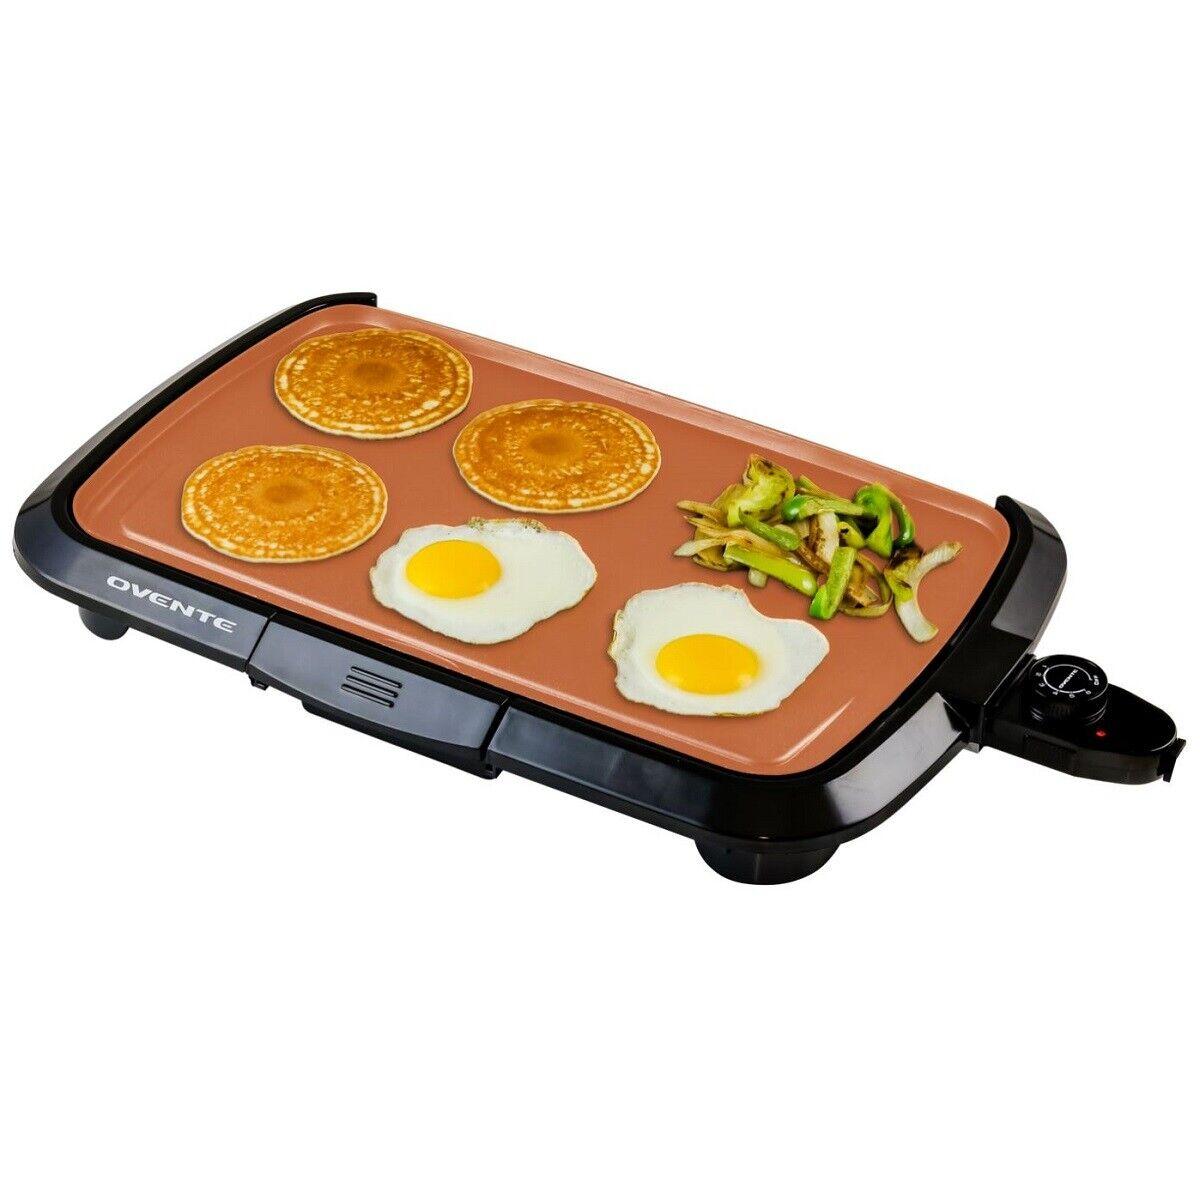 Ovente Electric Kitchen Griddle with Non-Stick Cooking Plate Copper GD1610CO